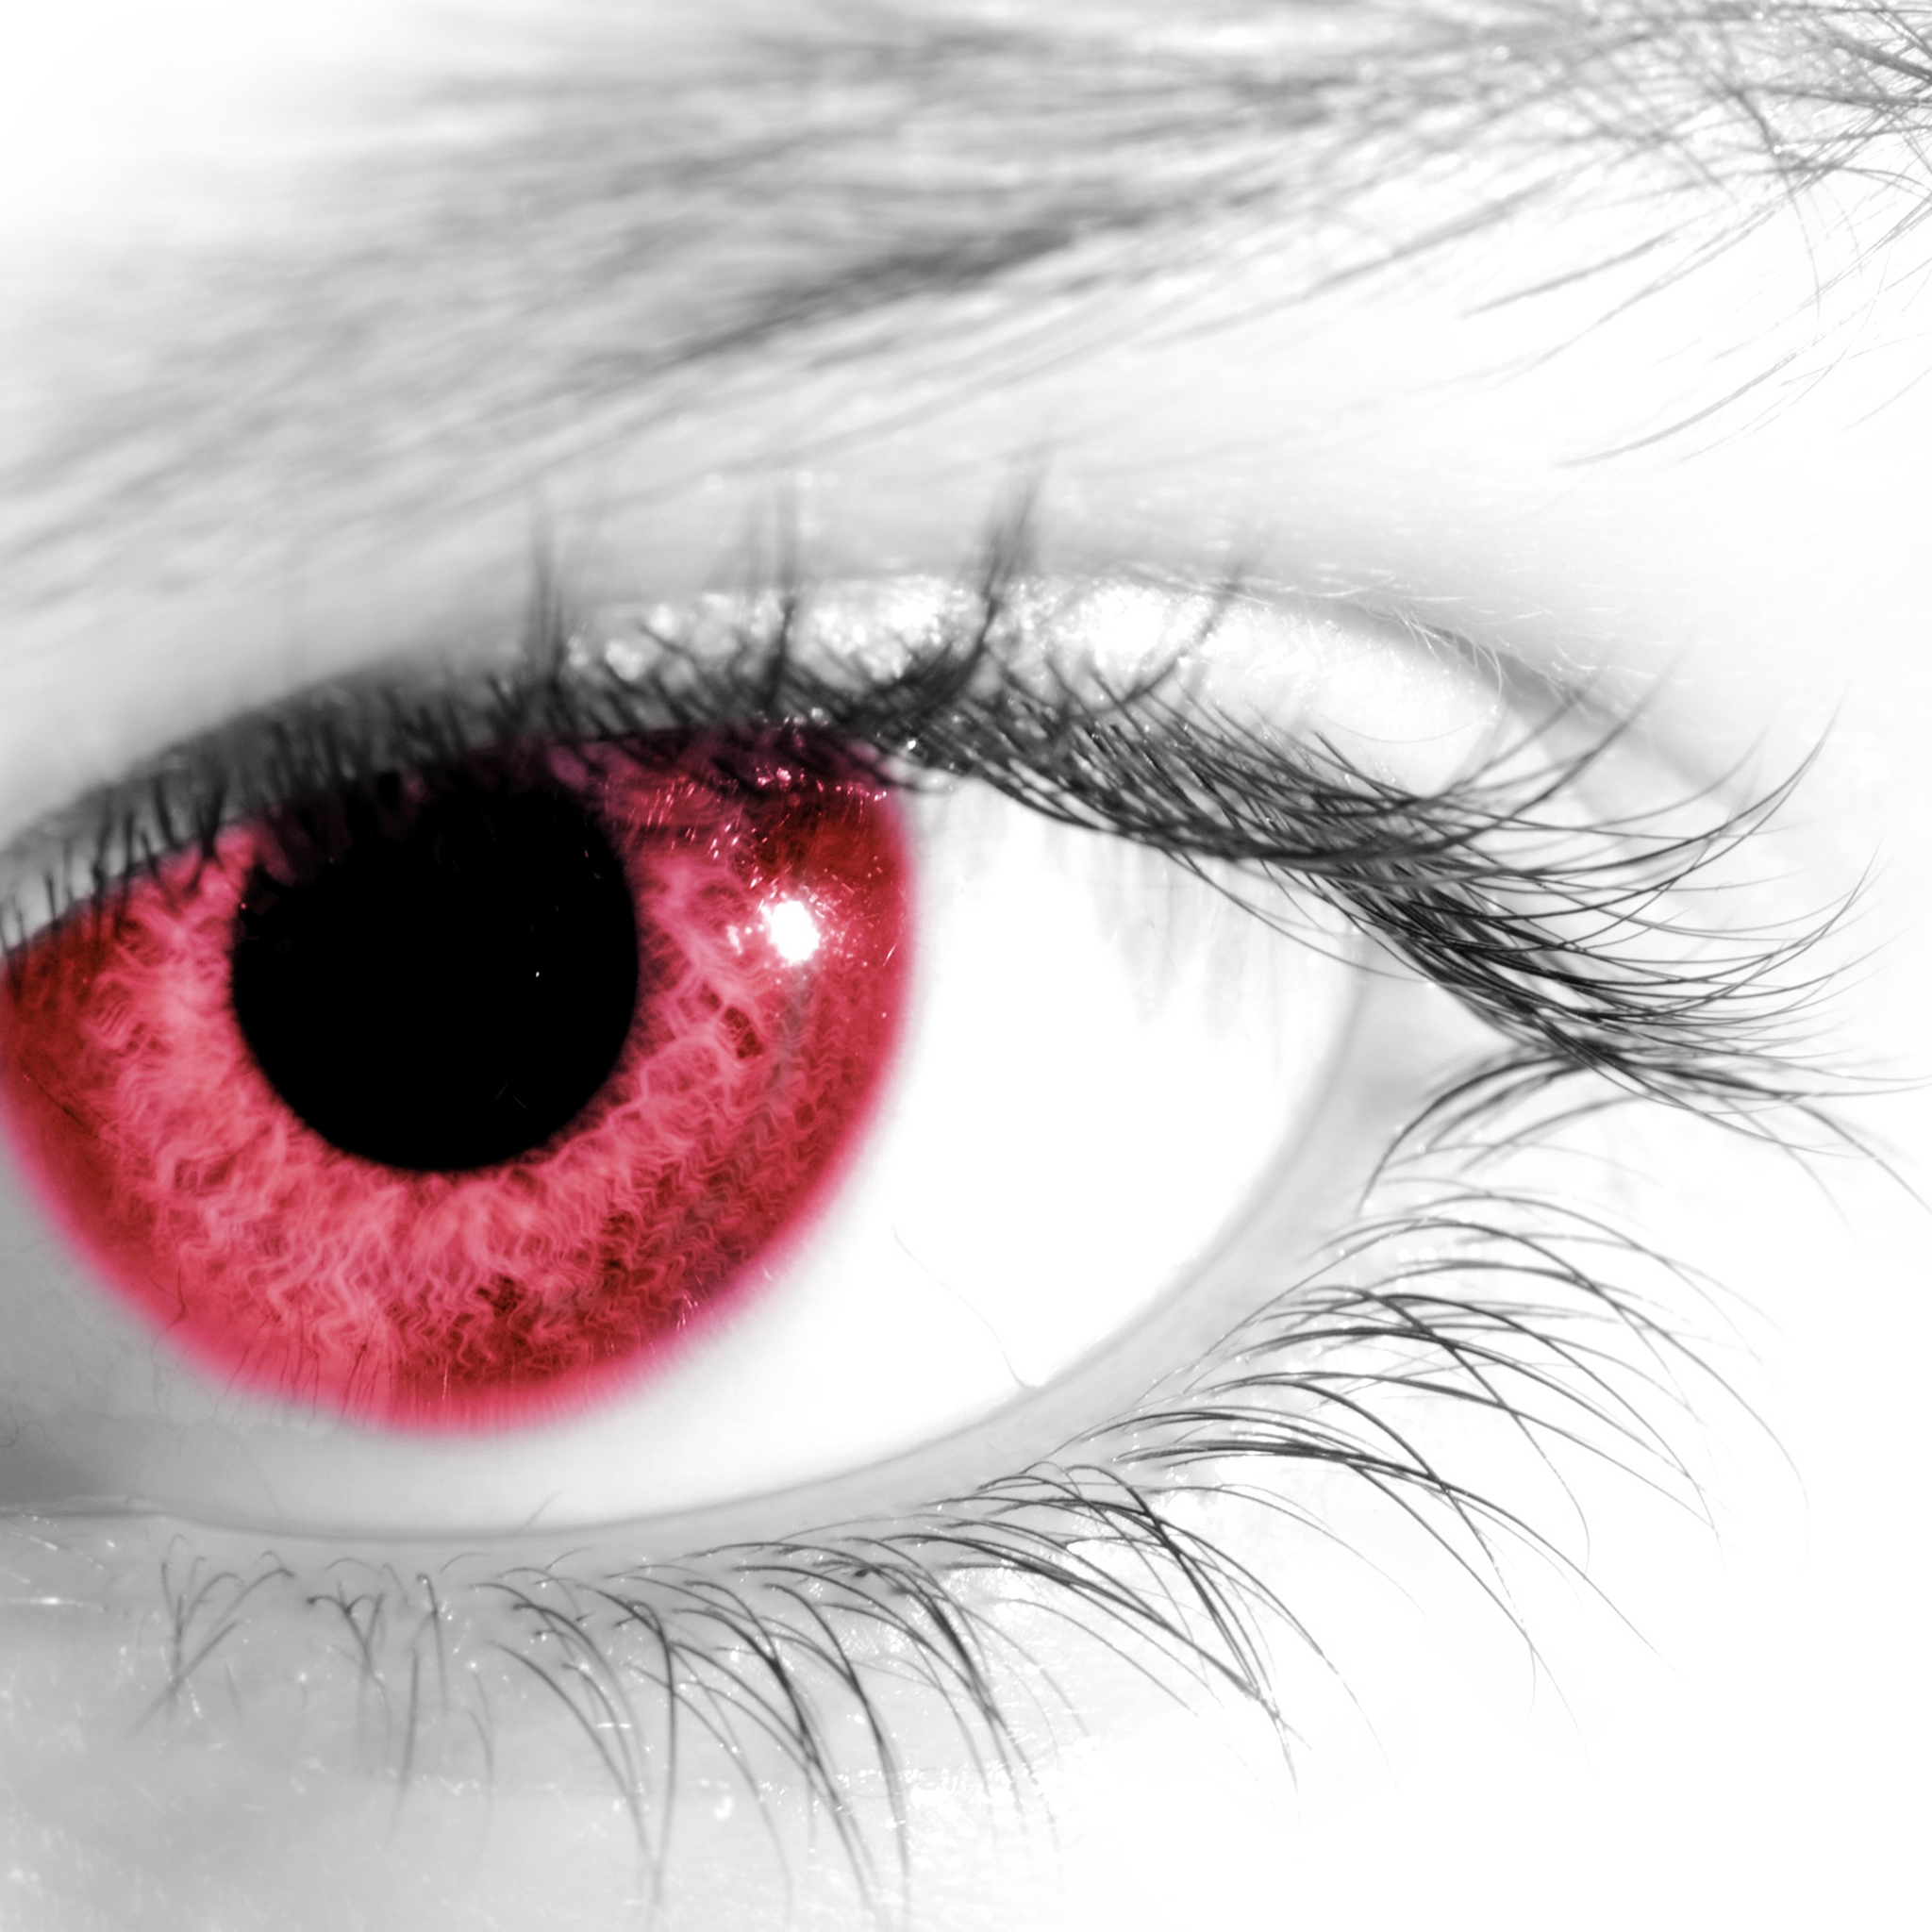 Red Eeye3Wallpapers ipad Retina Red Eye   iPad Retina